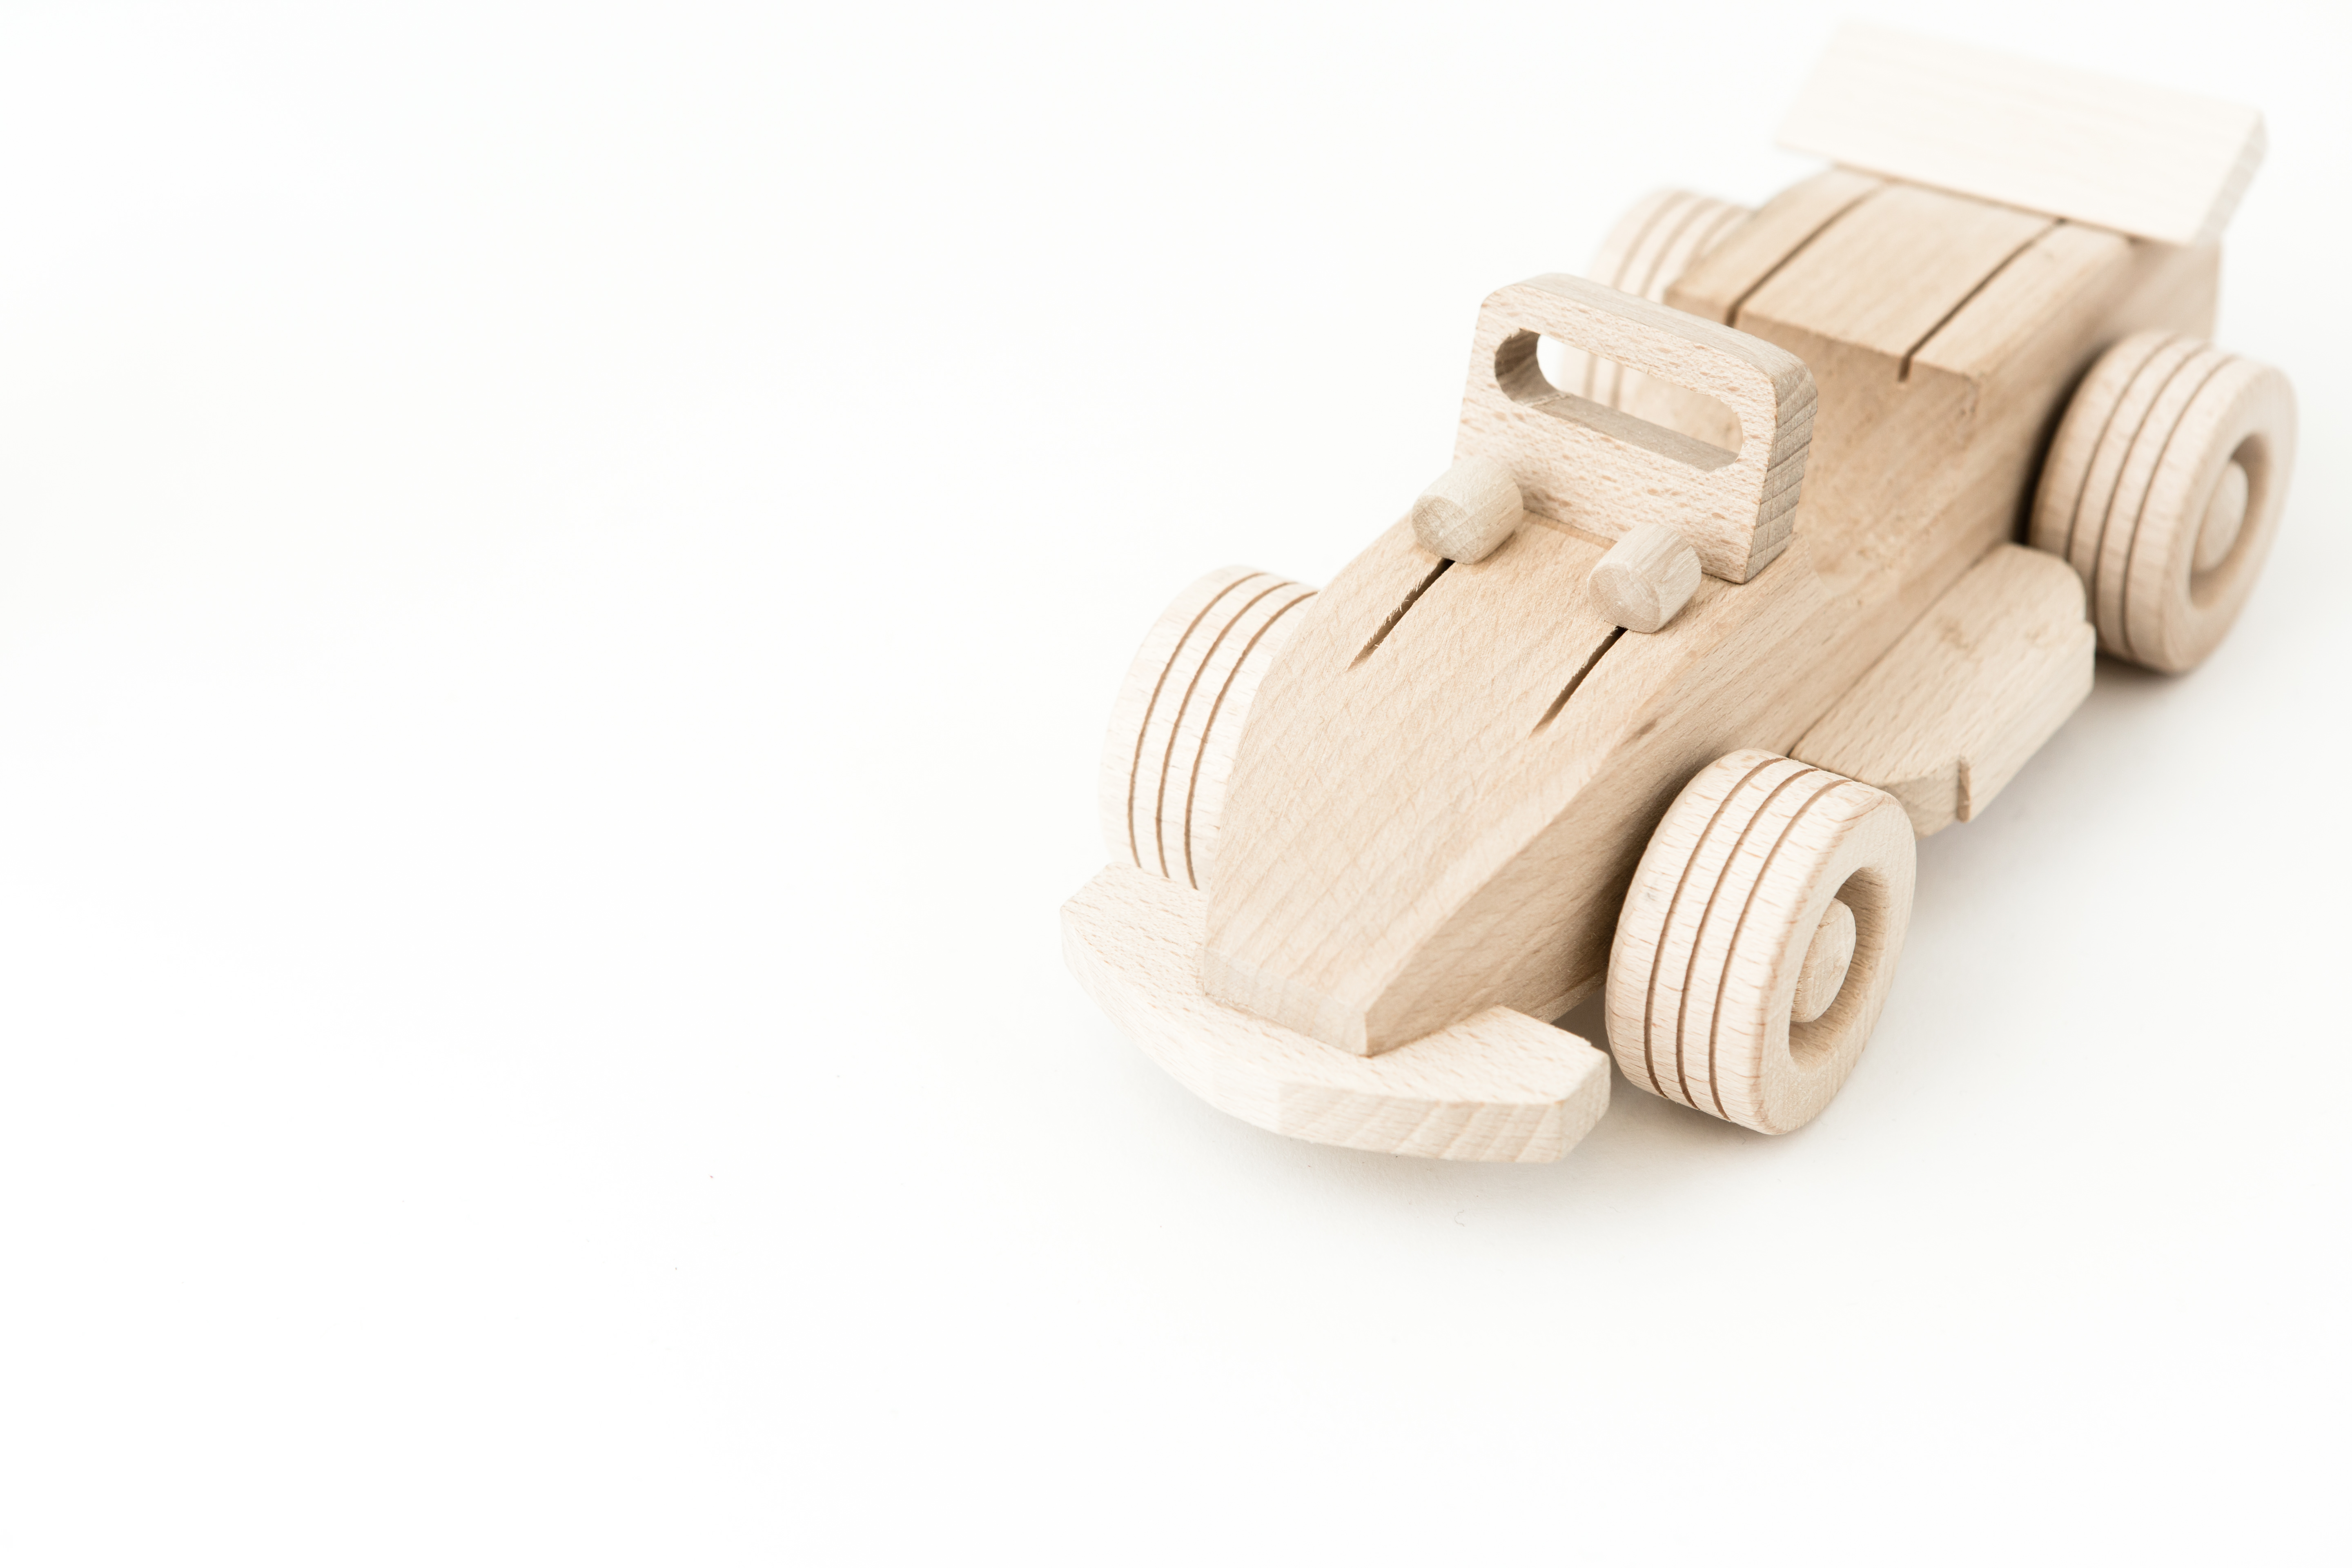 Wooden Toys - Kate Hennessy4